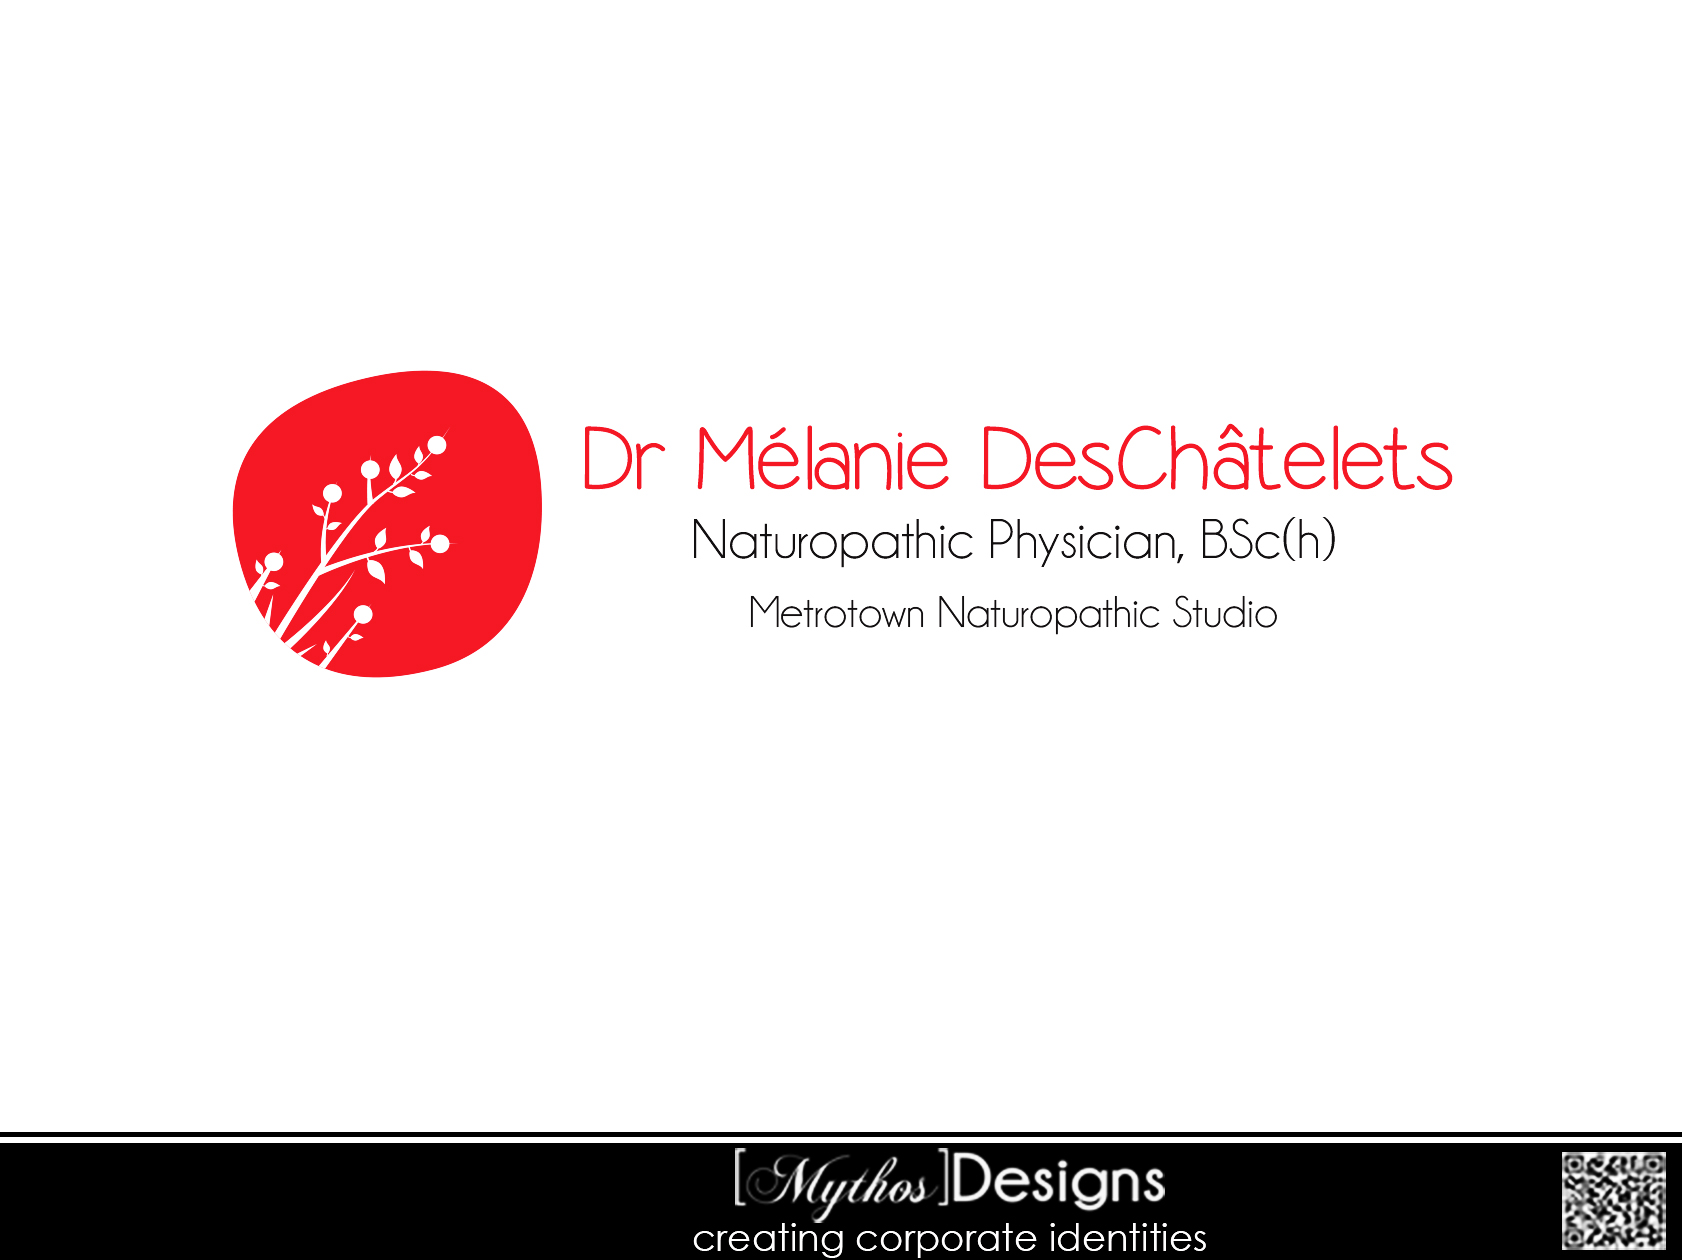 Logo Design by Mythos Designs - Entry No. 51 in the Logo Design Contest Artistic Logo Design for Dr Mélanie DesChâtelets.